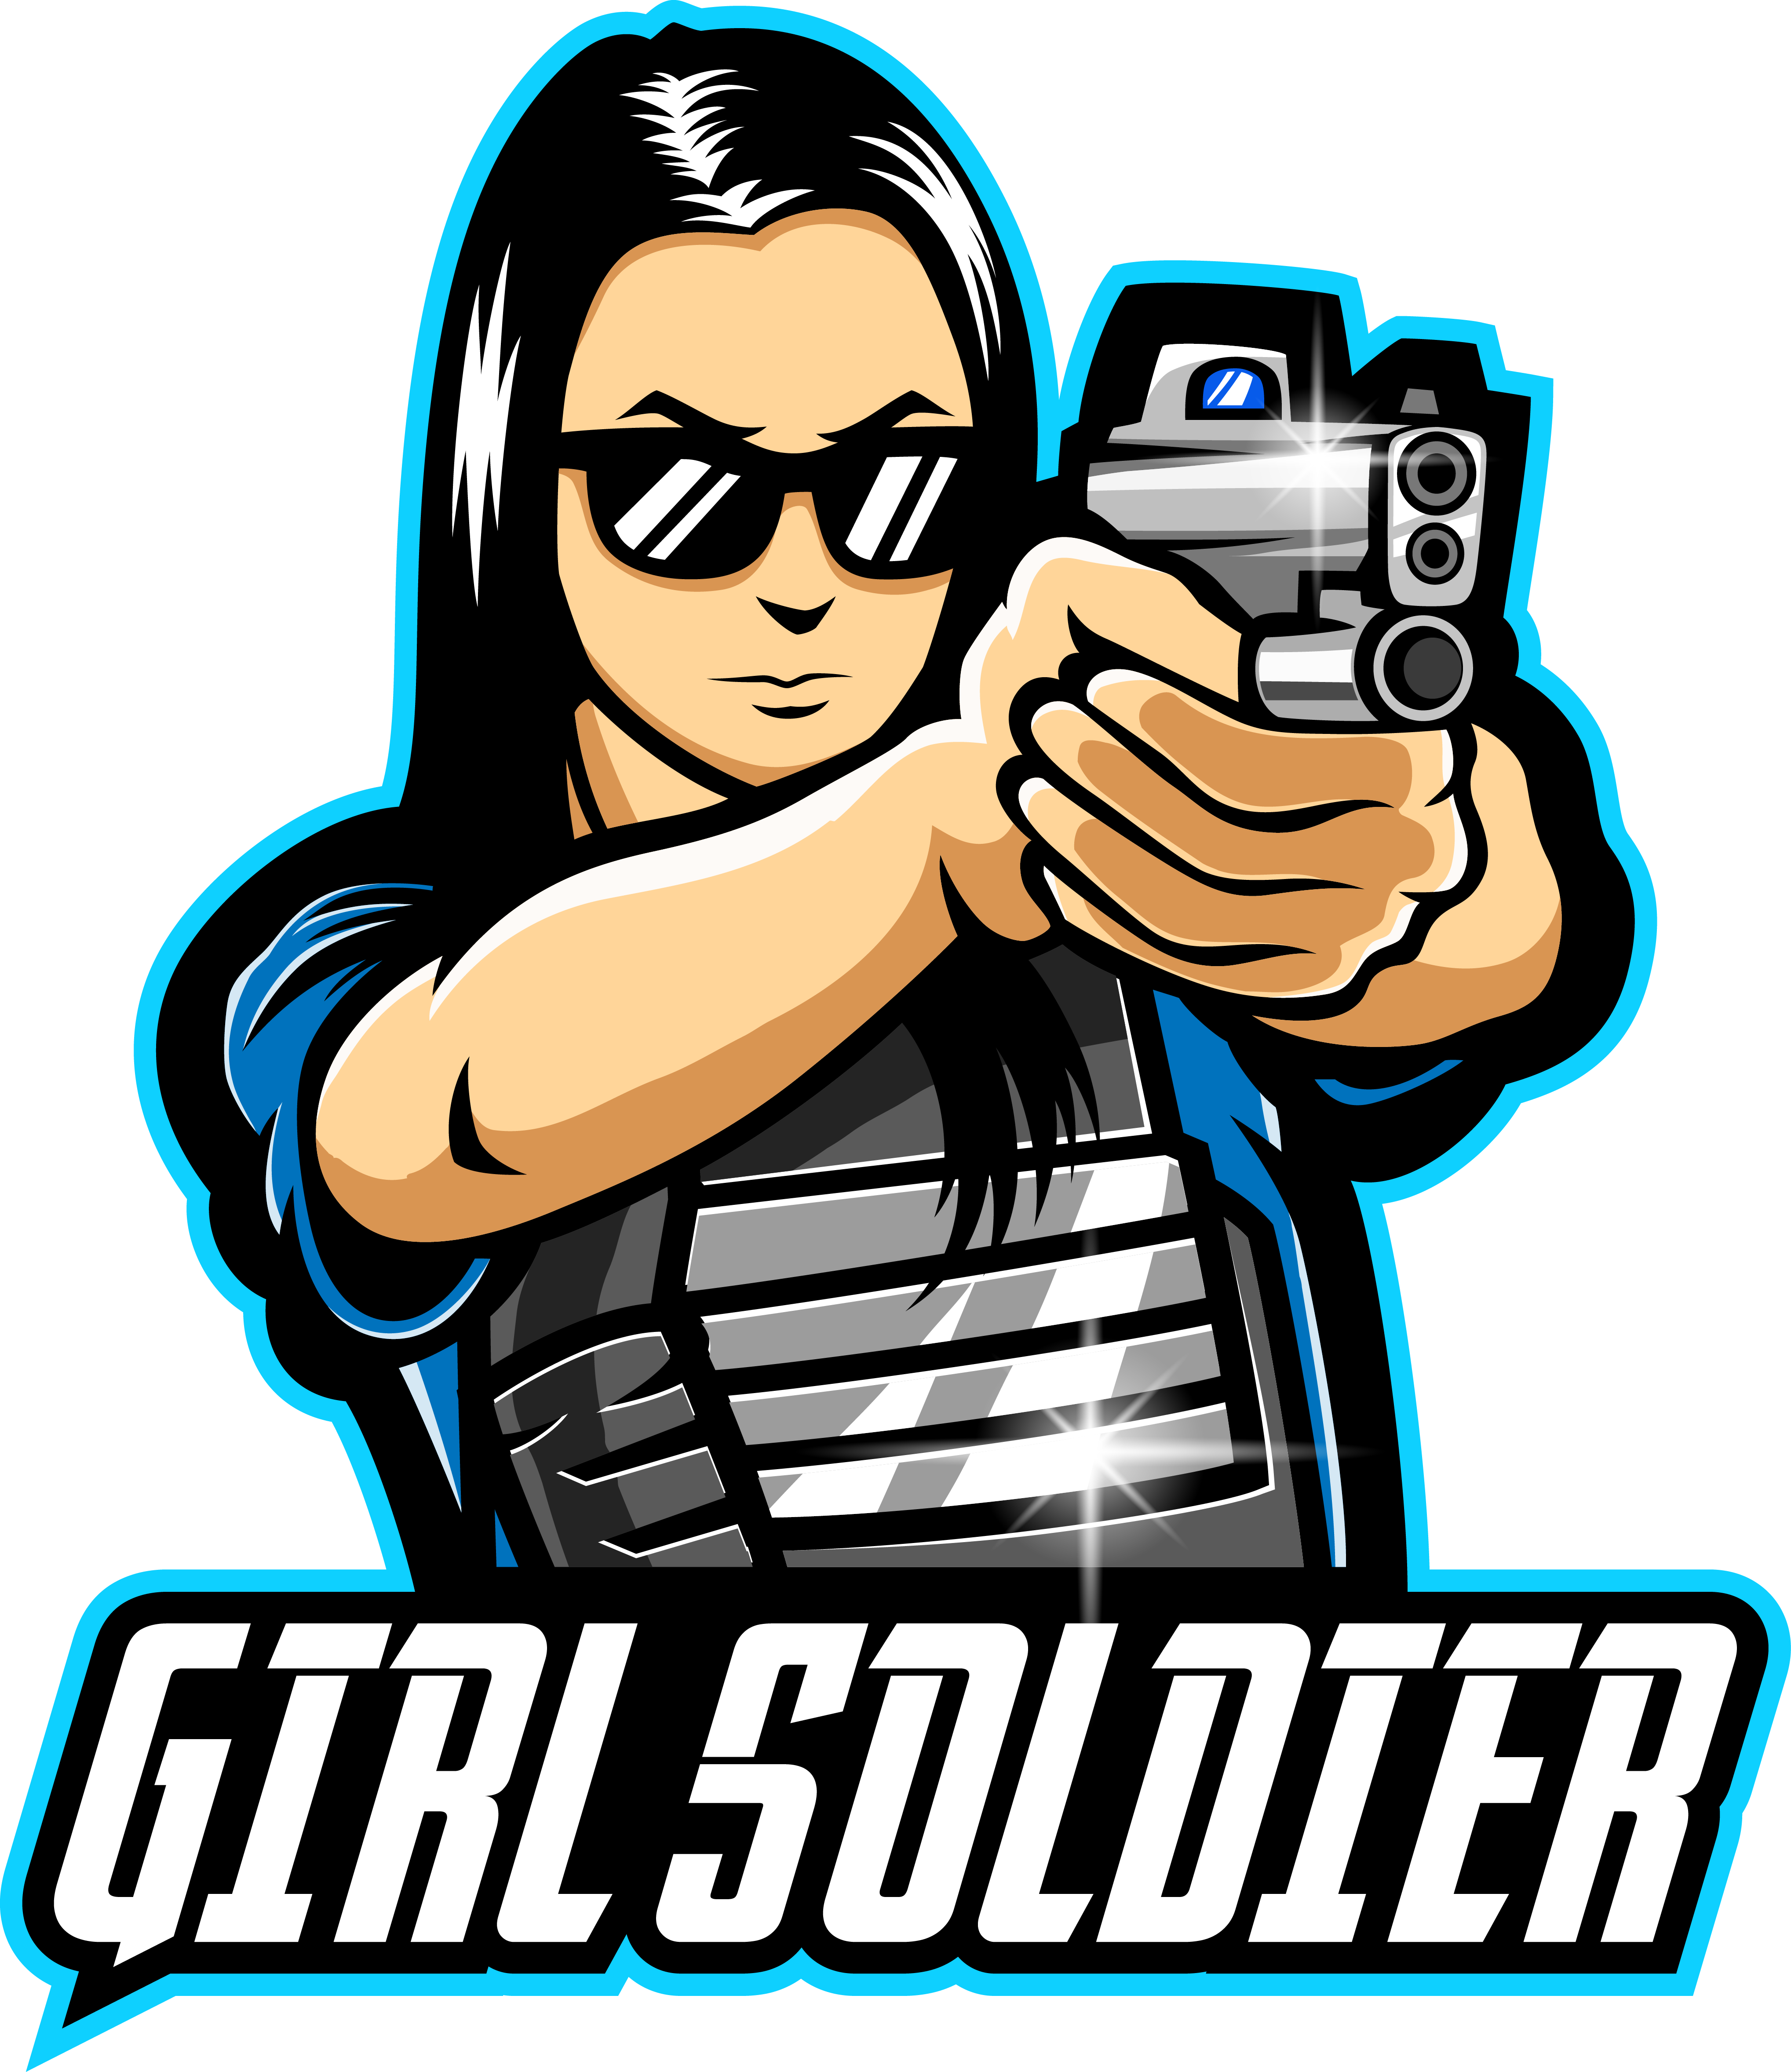 Girl soldier esport mascot logo By Visink TheHungryJPEG